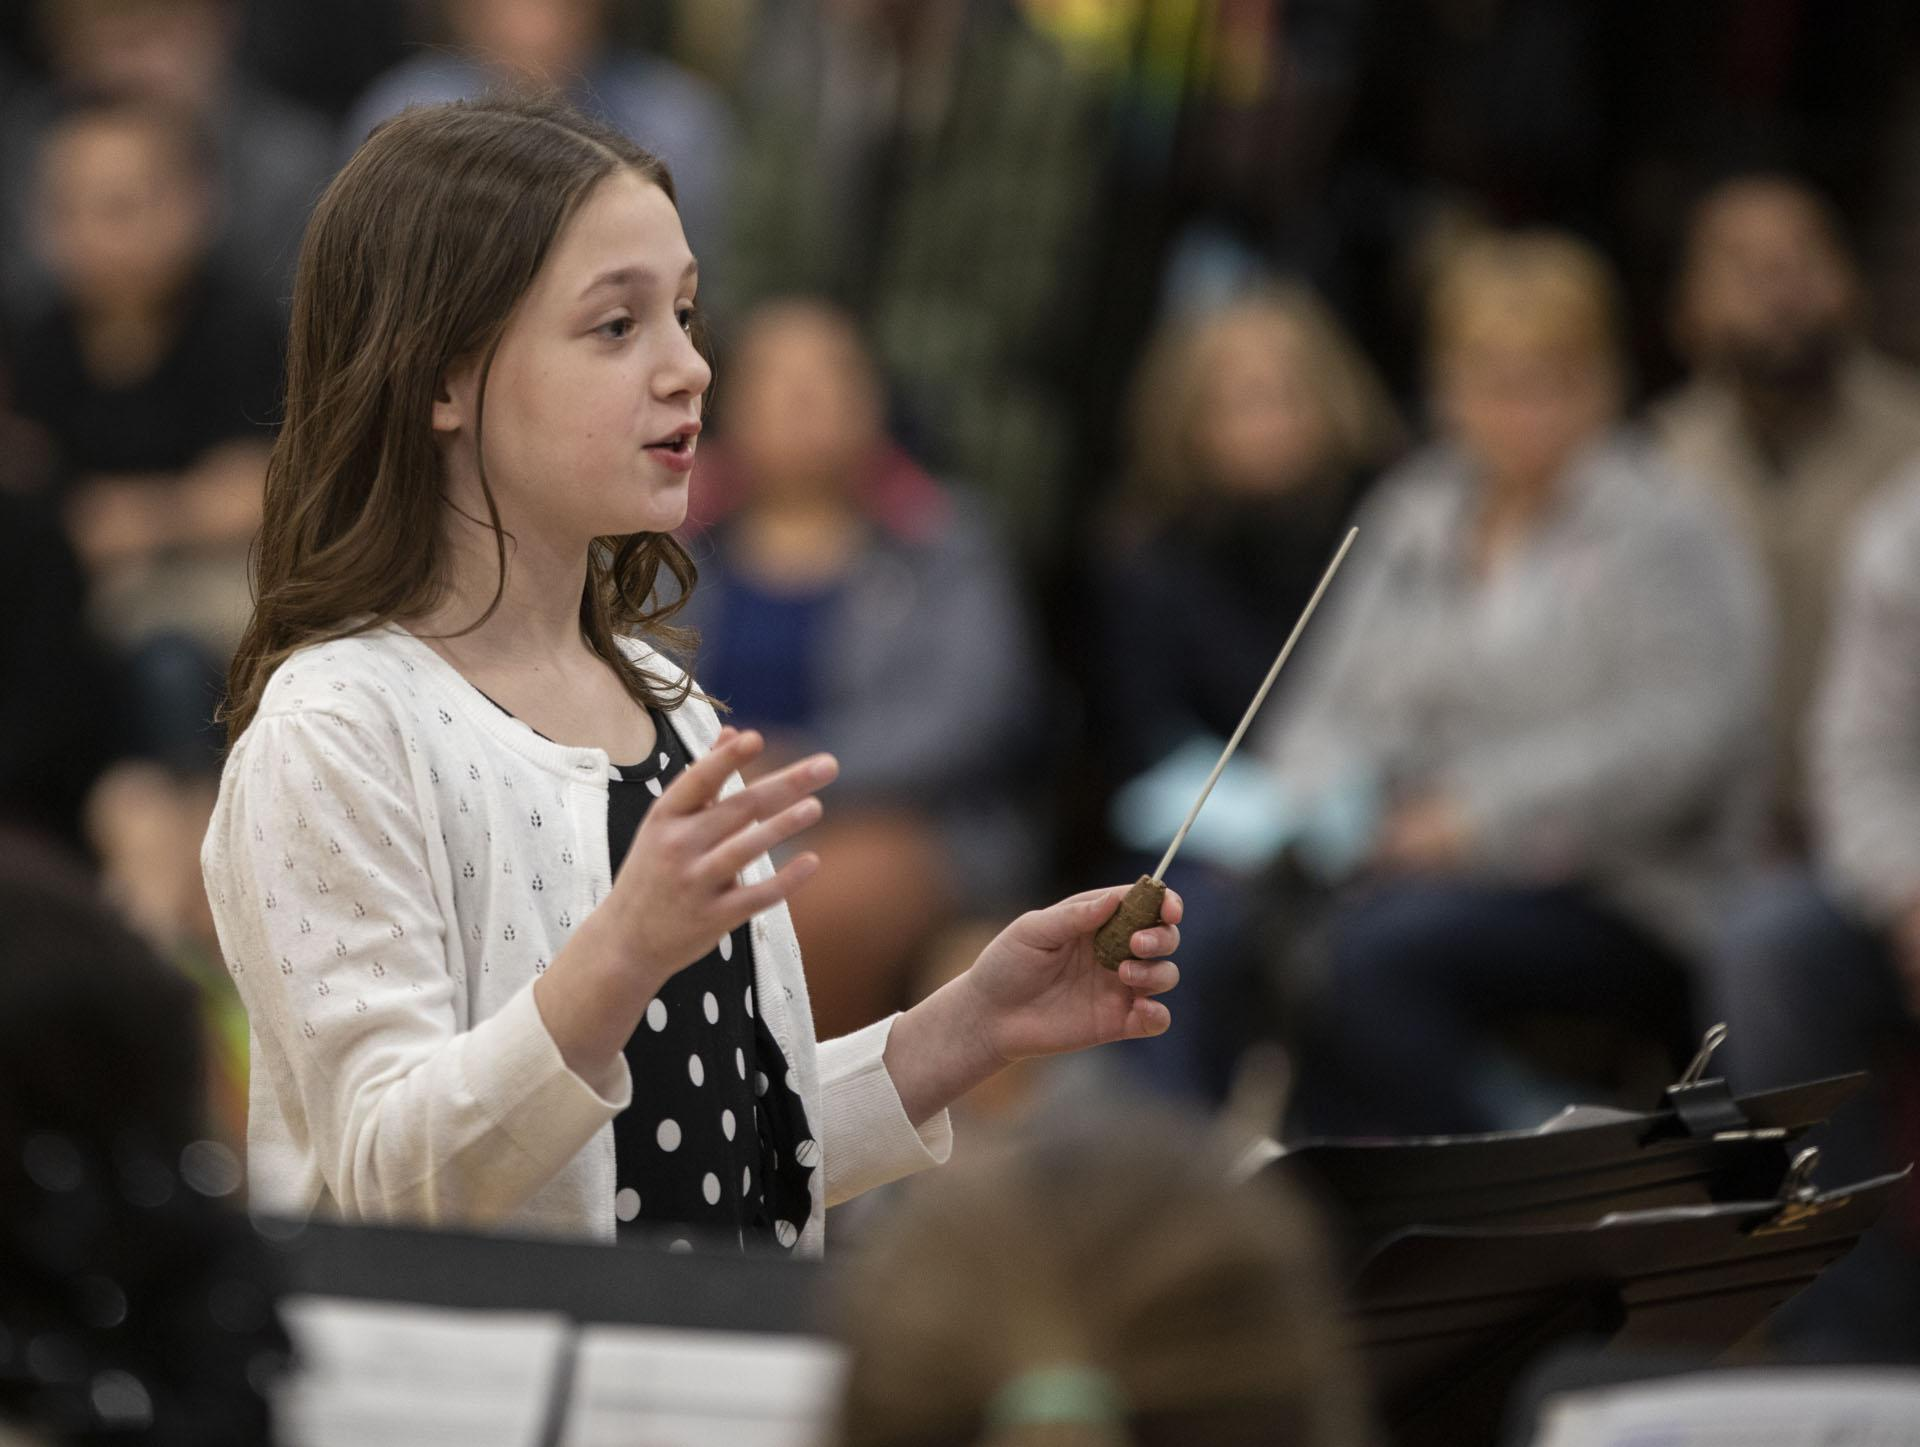 Student conducting concert